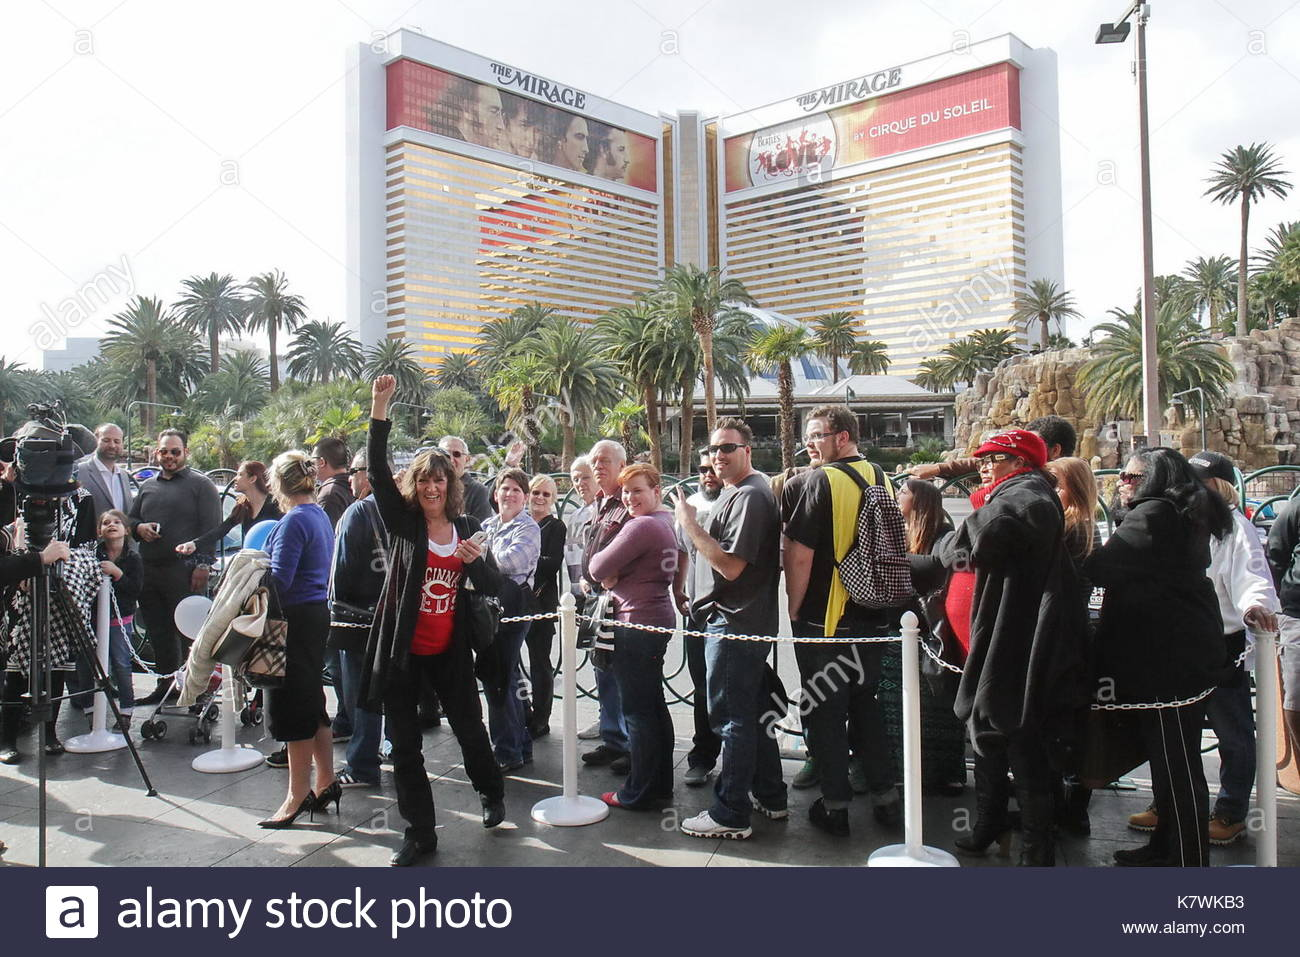 white castle opens in las vegas nevada on january 27 2015 in casino royale the smallest casino on las vegas strip first white castle to open in wefirst